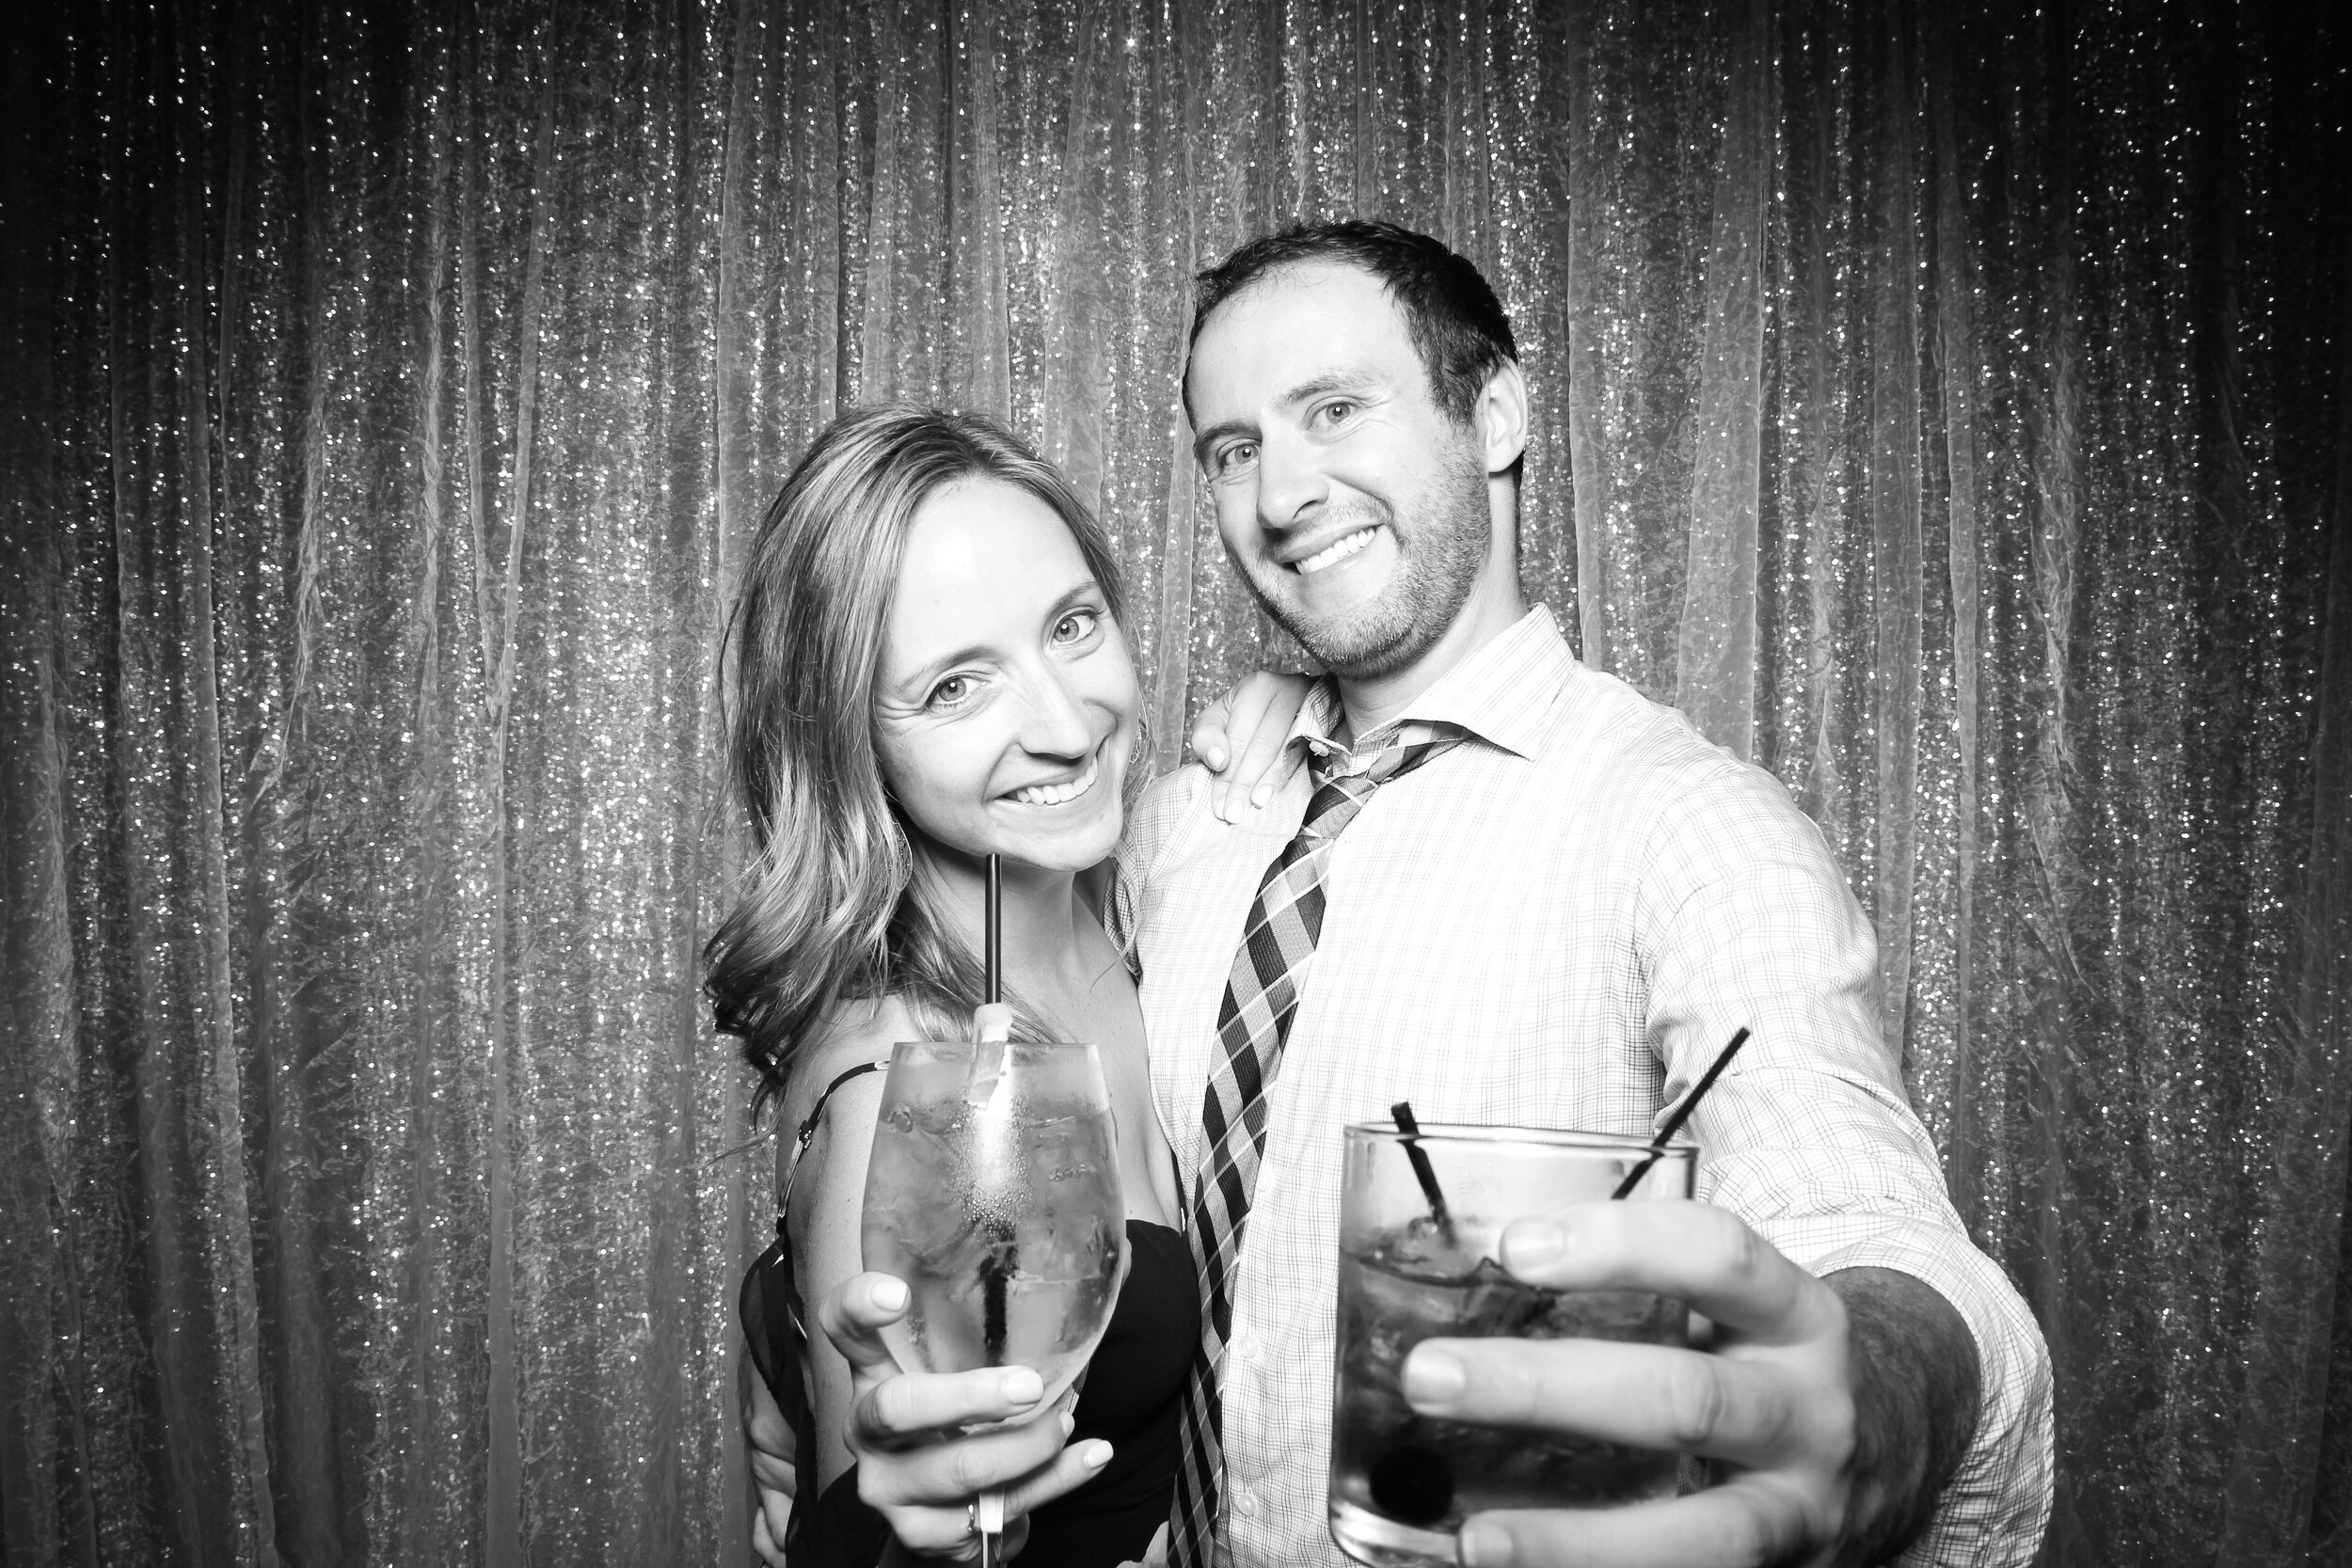 Chicago_Vintage_Wedding_Photobooth_Country_Club_23.jpg